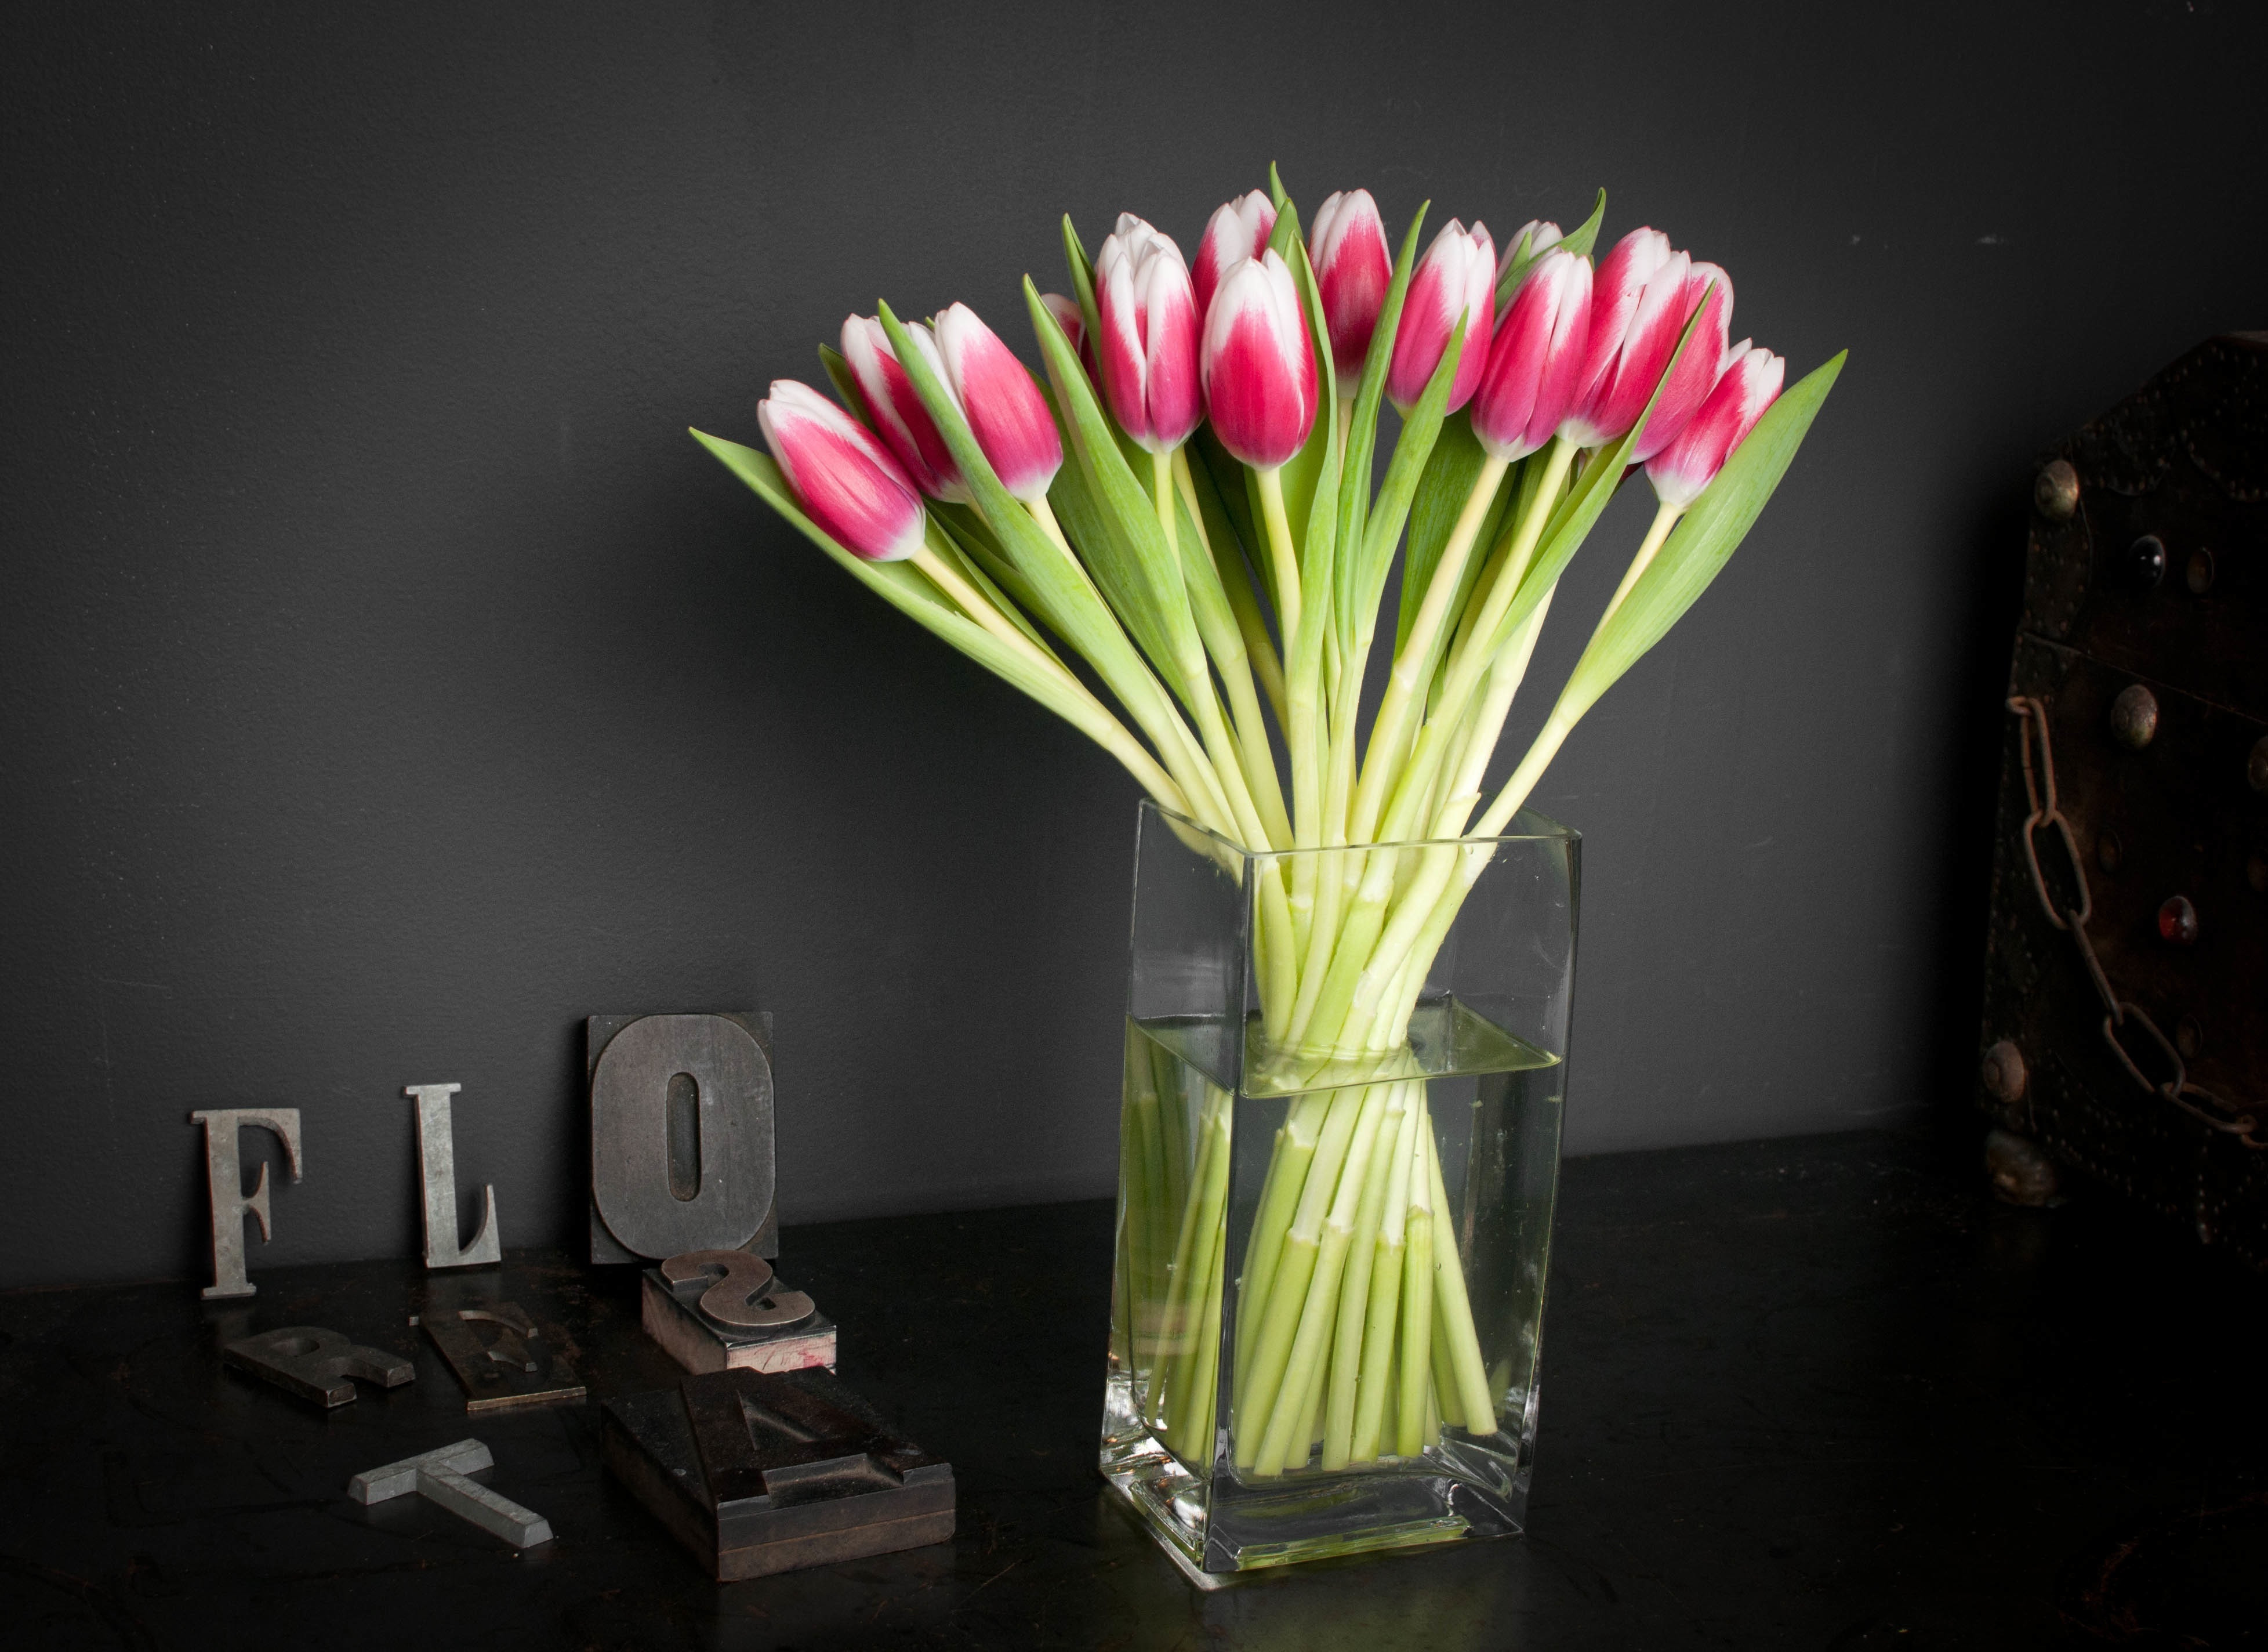 Waterford 9 Inch Vase Of Floresta Floral Design event Long island City Florists Intended for Tulips Arranged In A Simple Vase